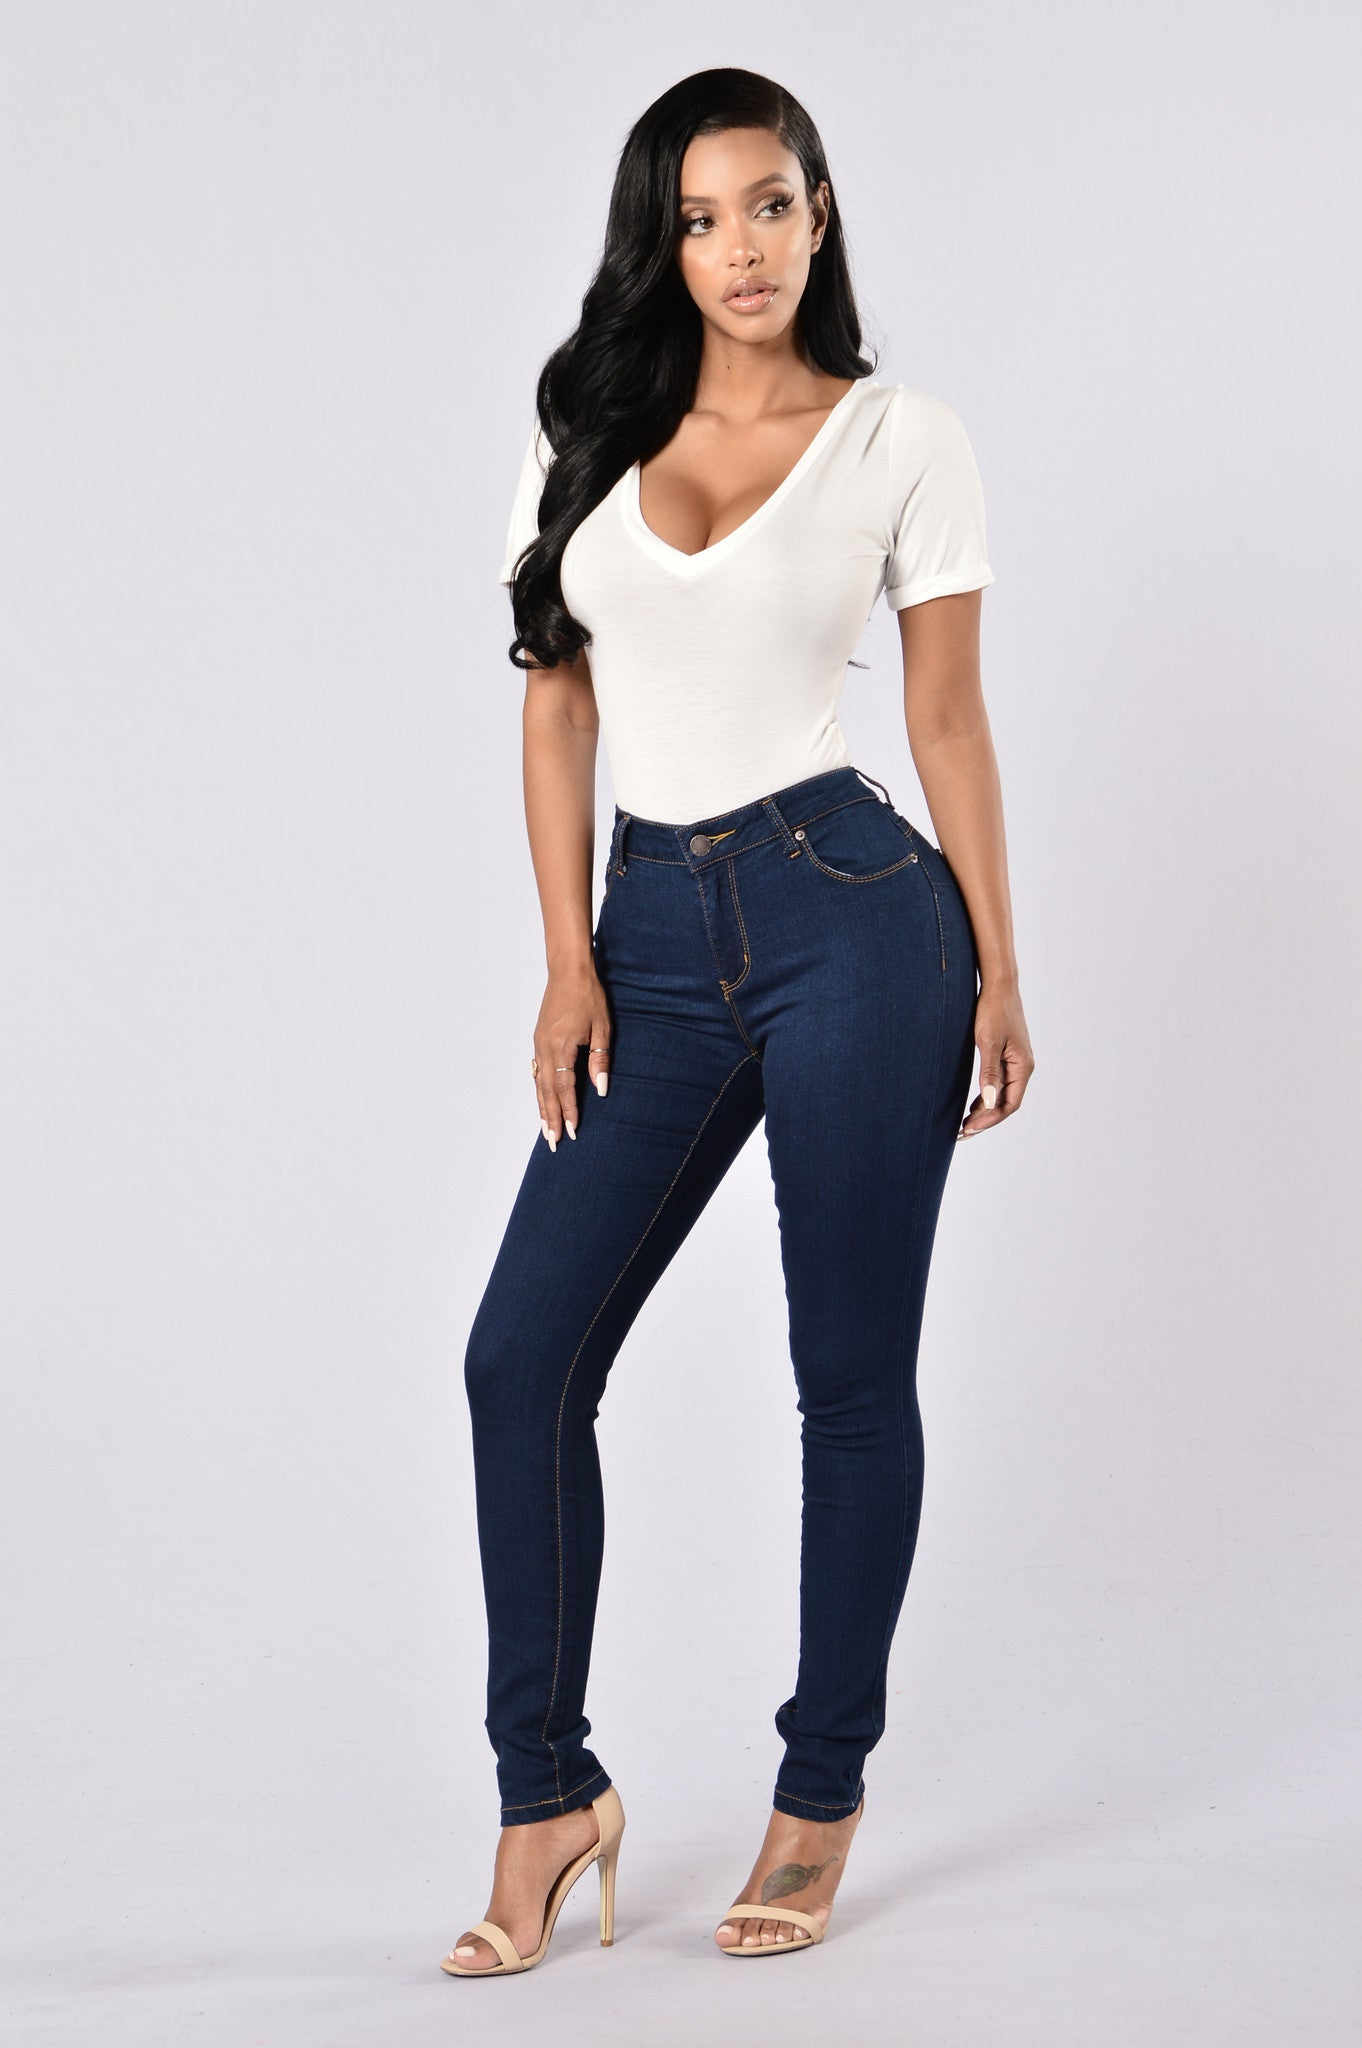 69ea7c79455 Booty Booty Booty Everywhere Shaping Denim - Medium Blue